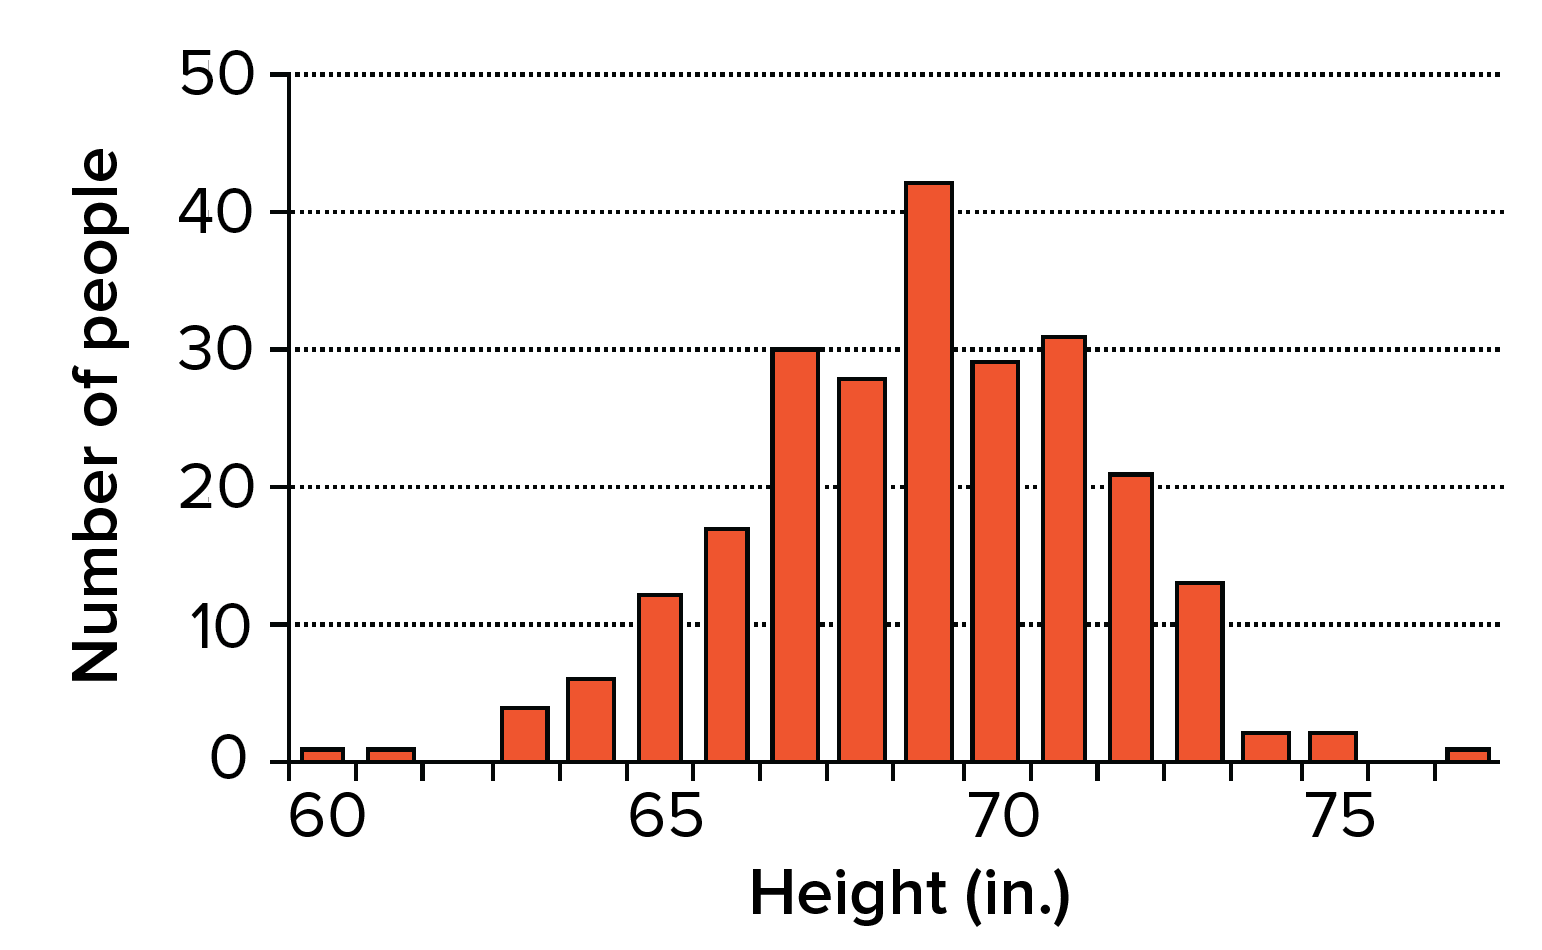 hight resolution of histogram showing height in inches of male high school seniors in a sample group the